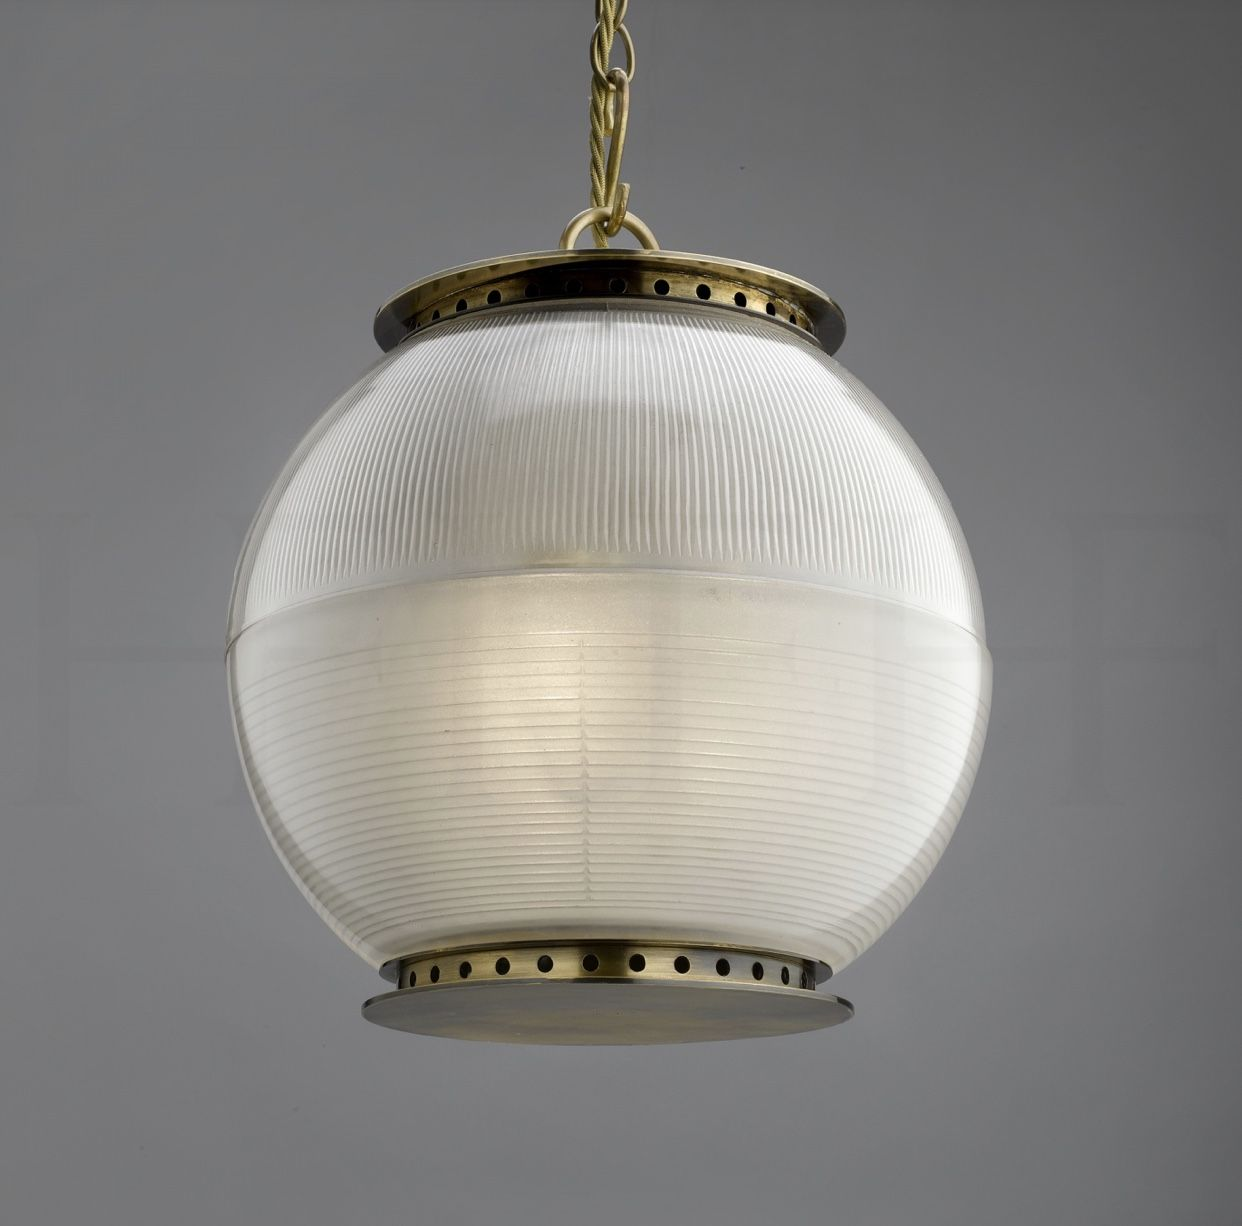 Pin On Suspended Lights